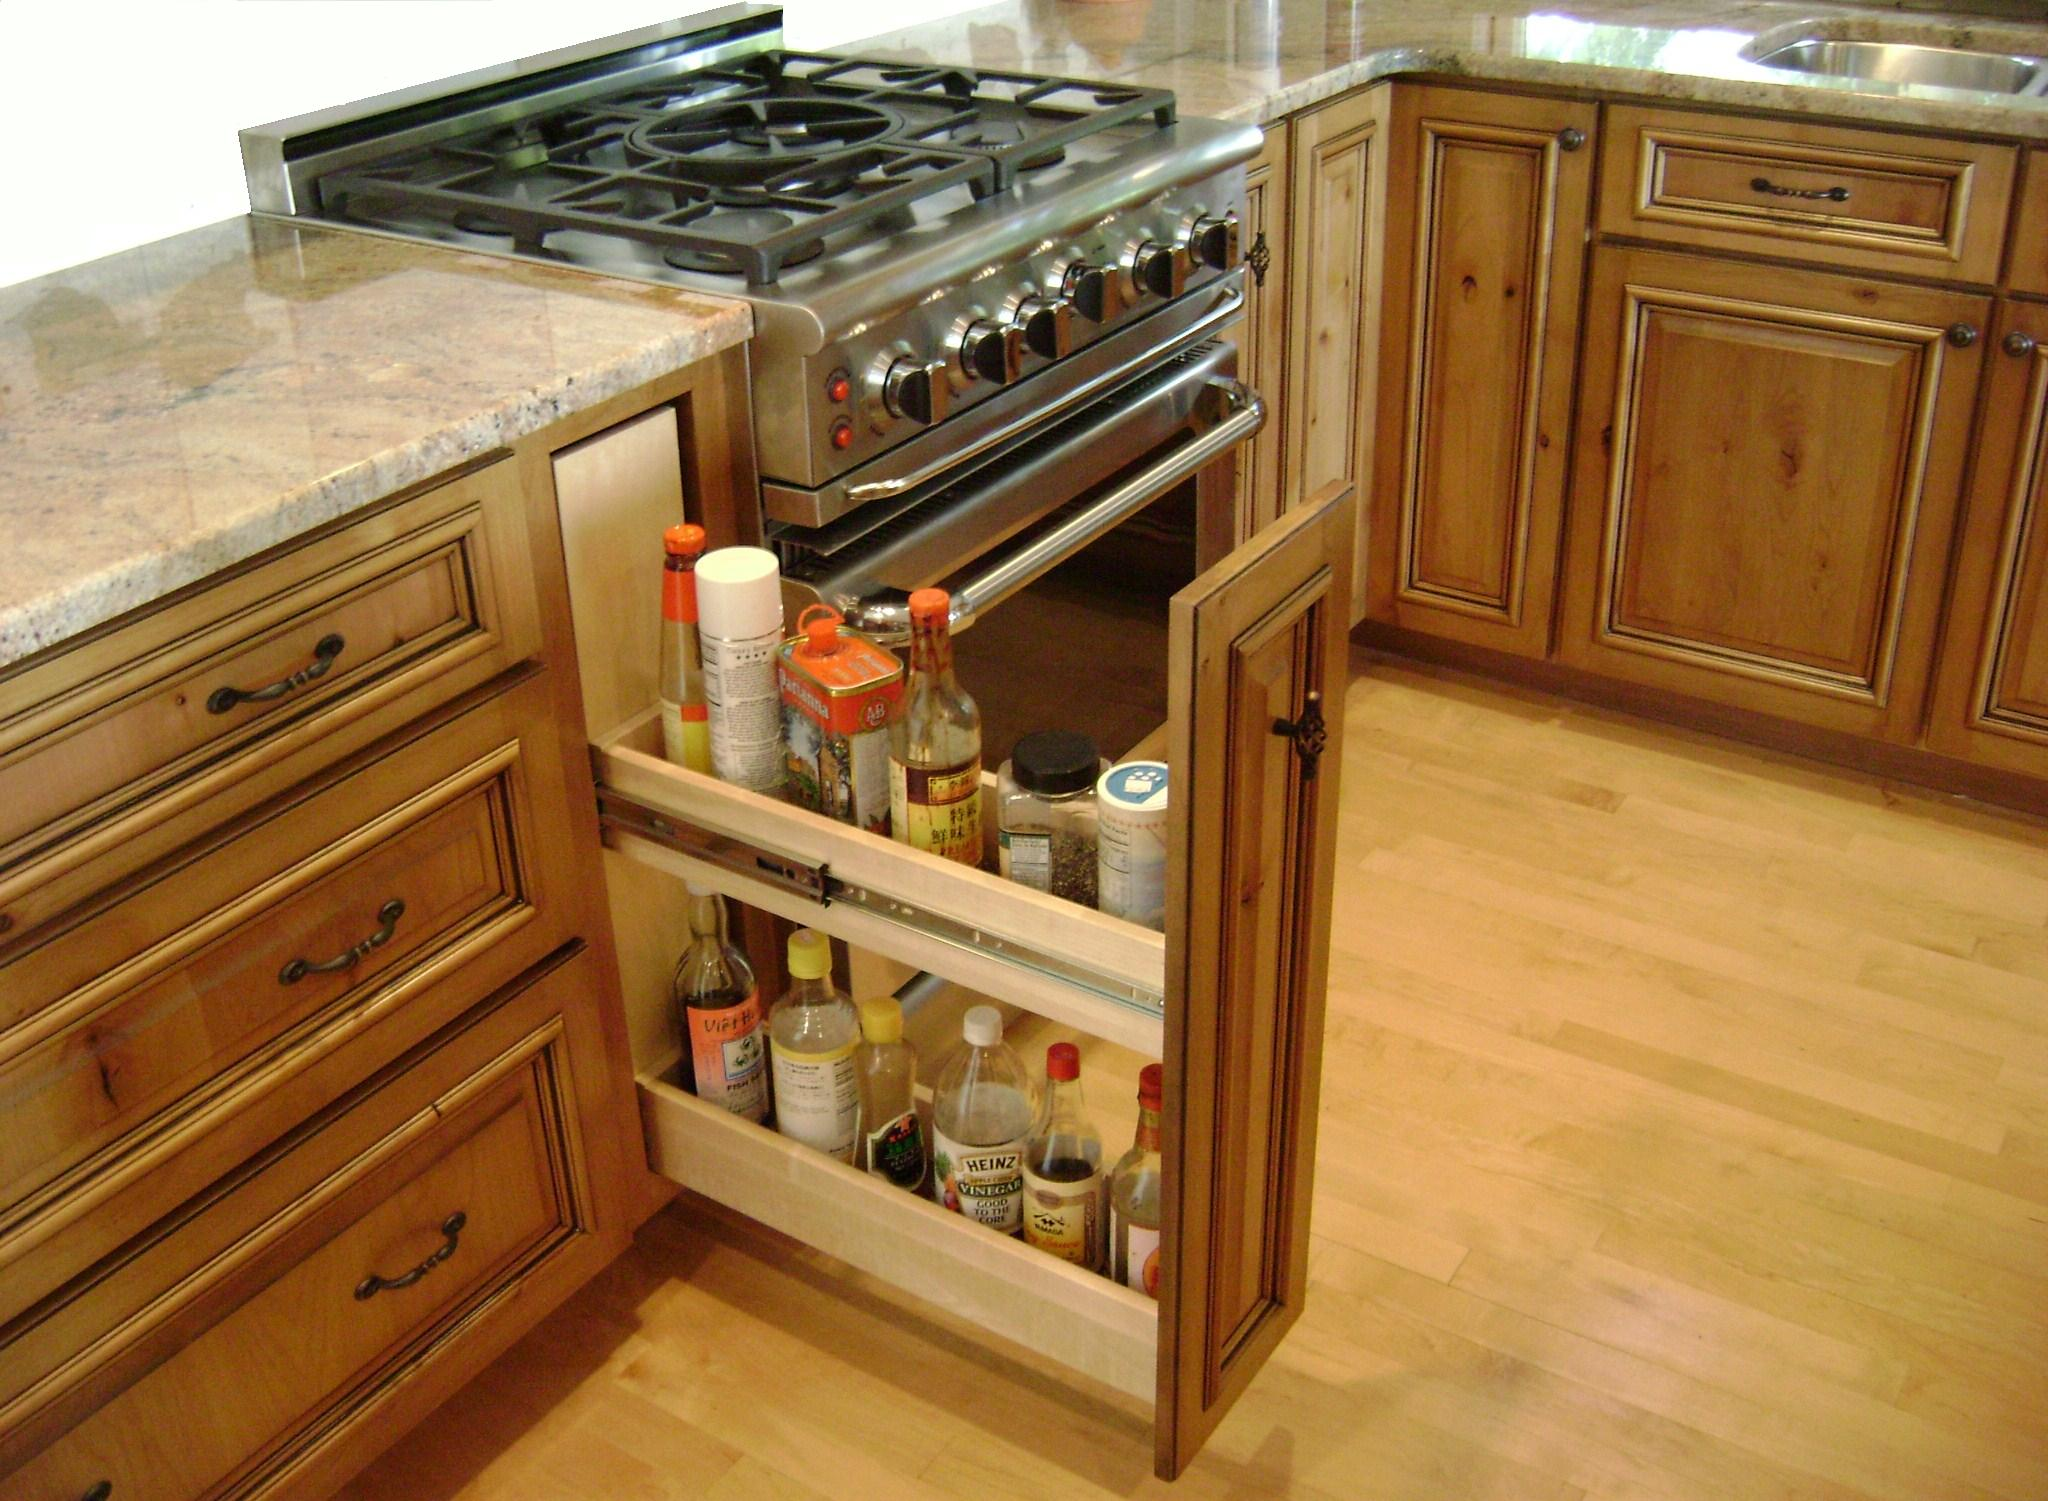 Kitchen storage solutions camano custom 39 s blog for Cabinet storage ideas kitchen